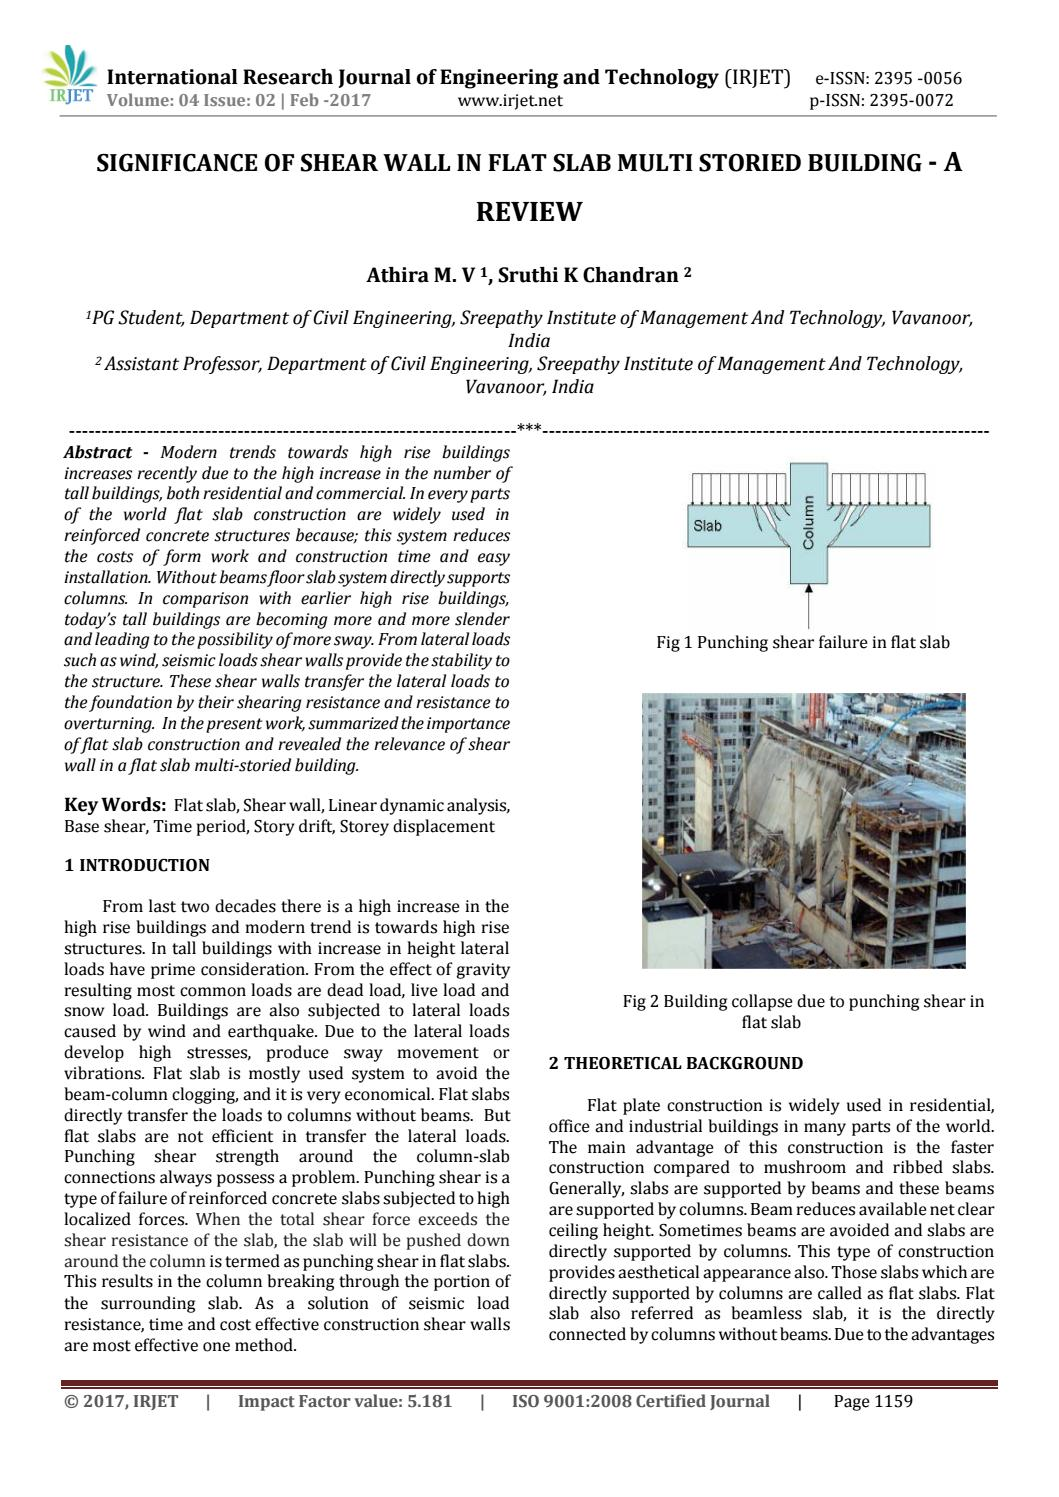 Significance of shear wall in flat slab multi storied